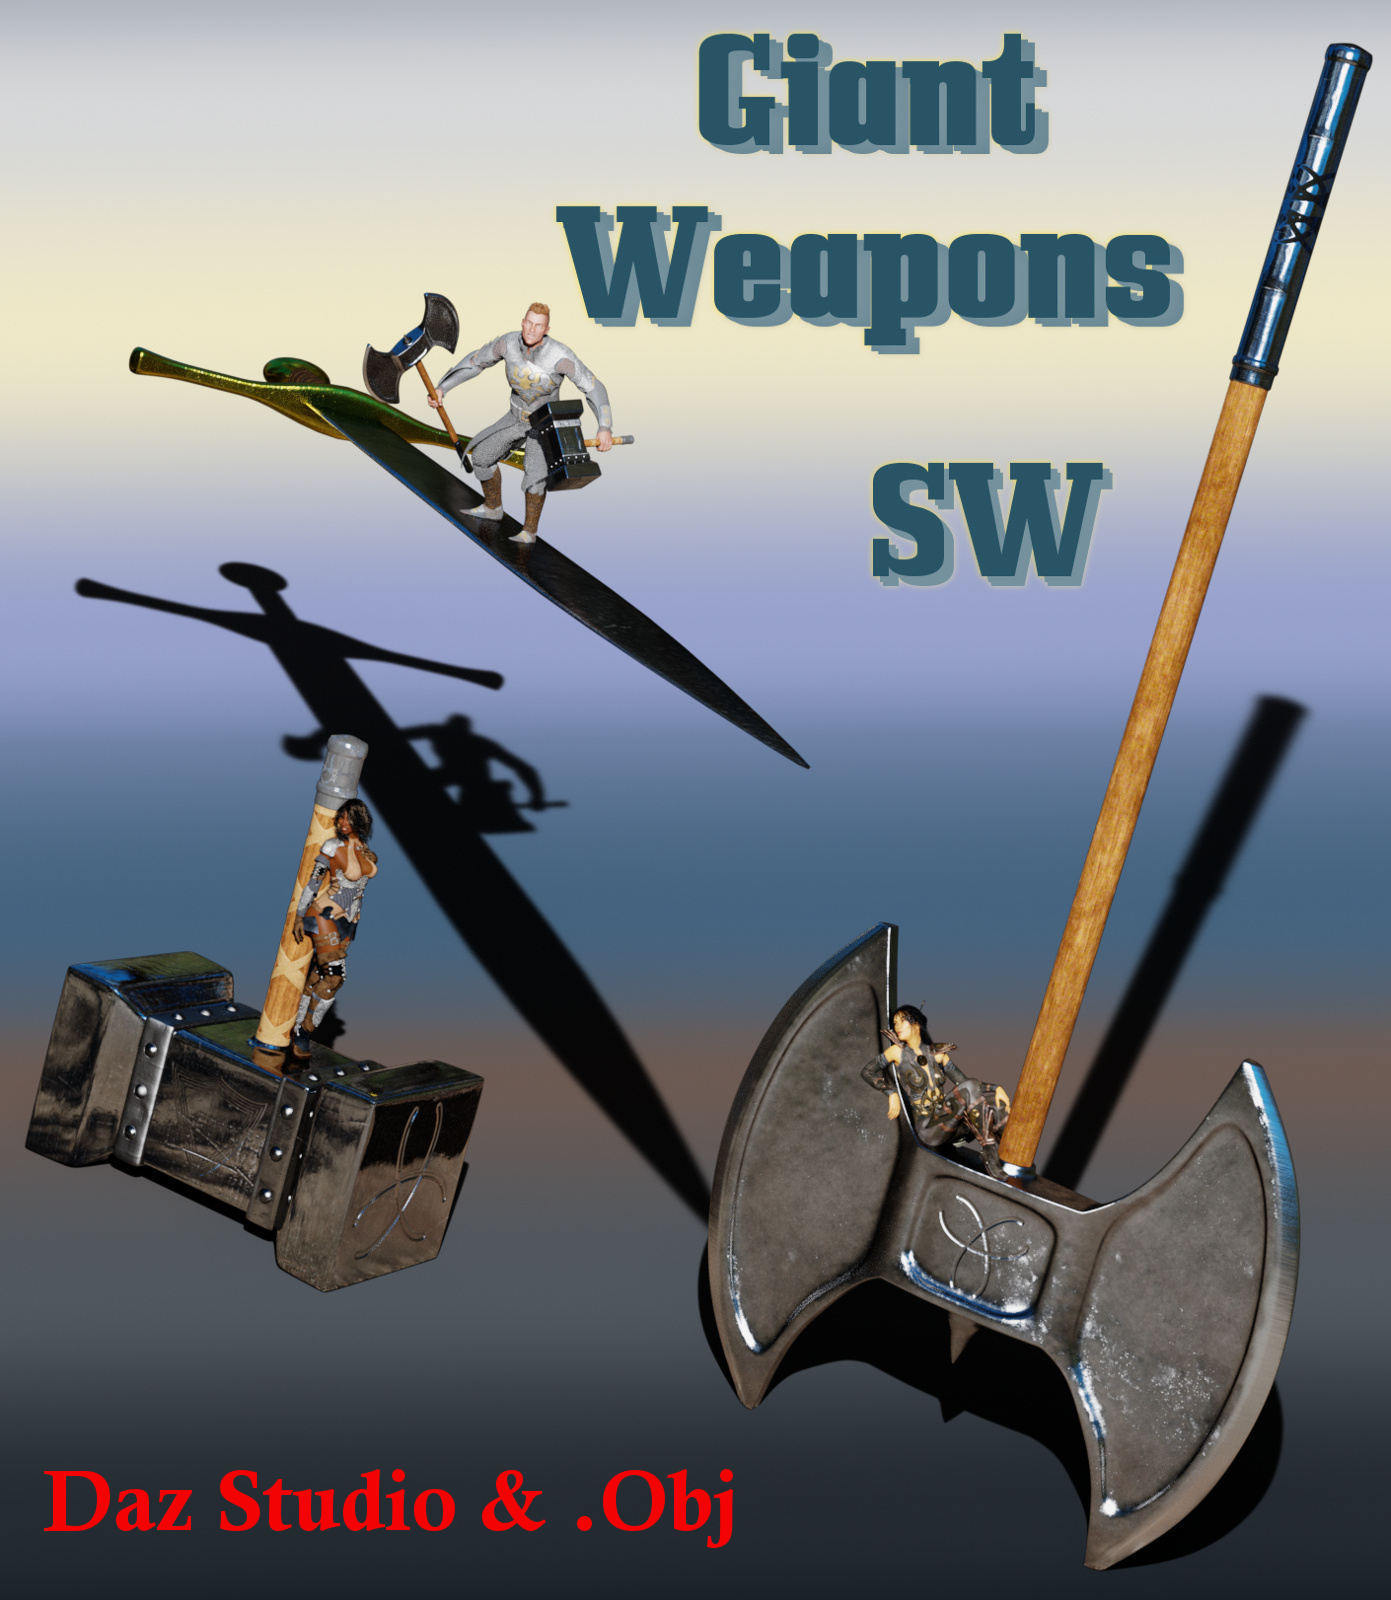 Giant Weapons SW